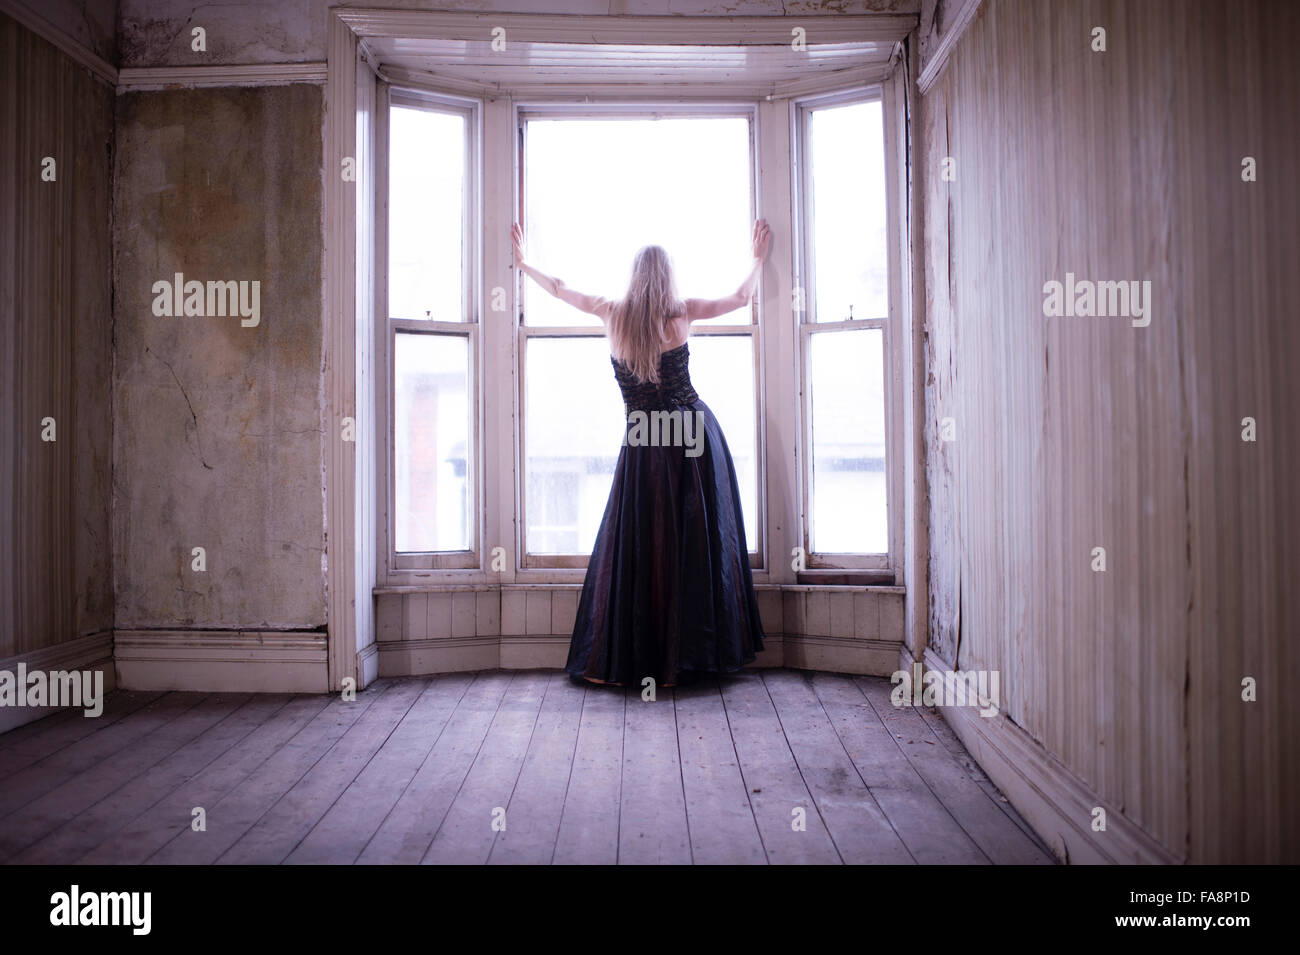 a young slim blonde haired woman wearing a long ball gown dress alone in a rundown derelict room building standing - Stock Image